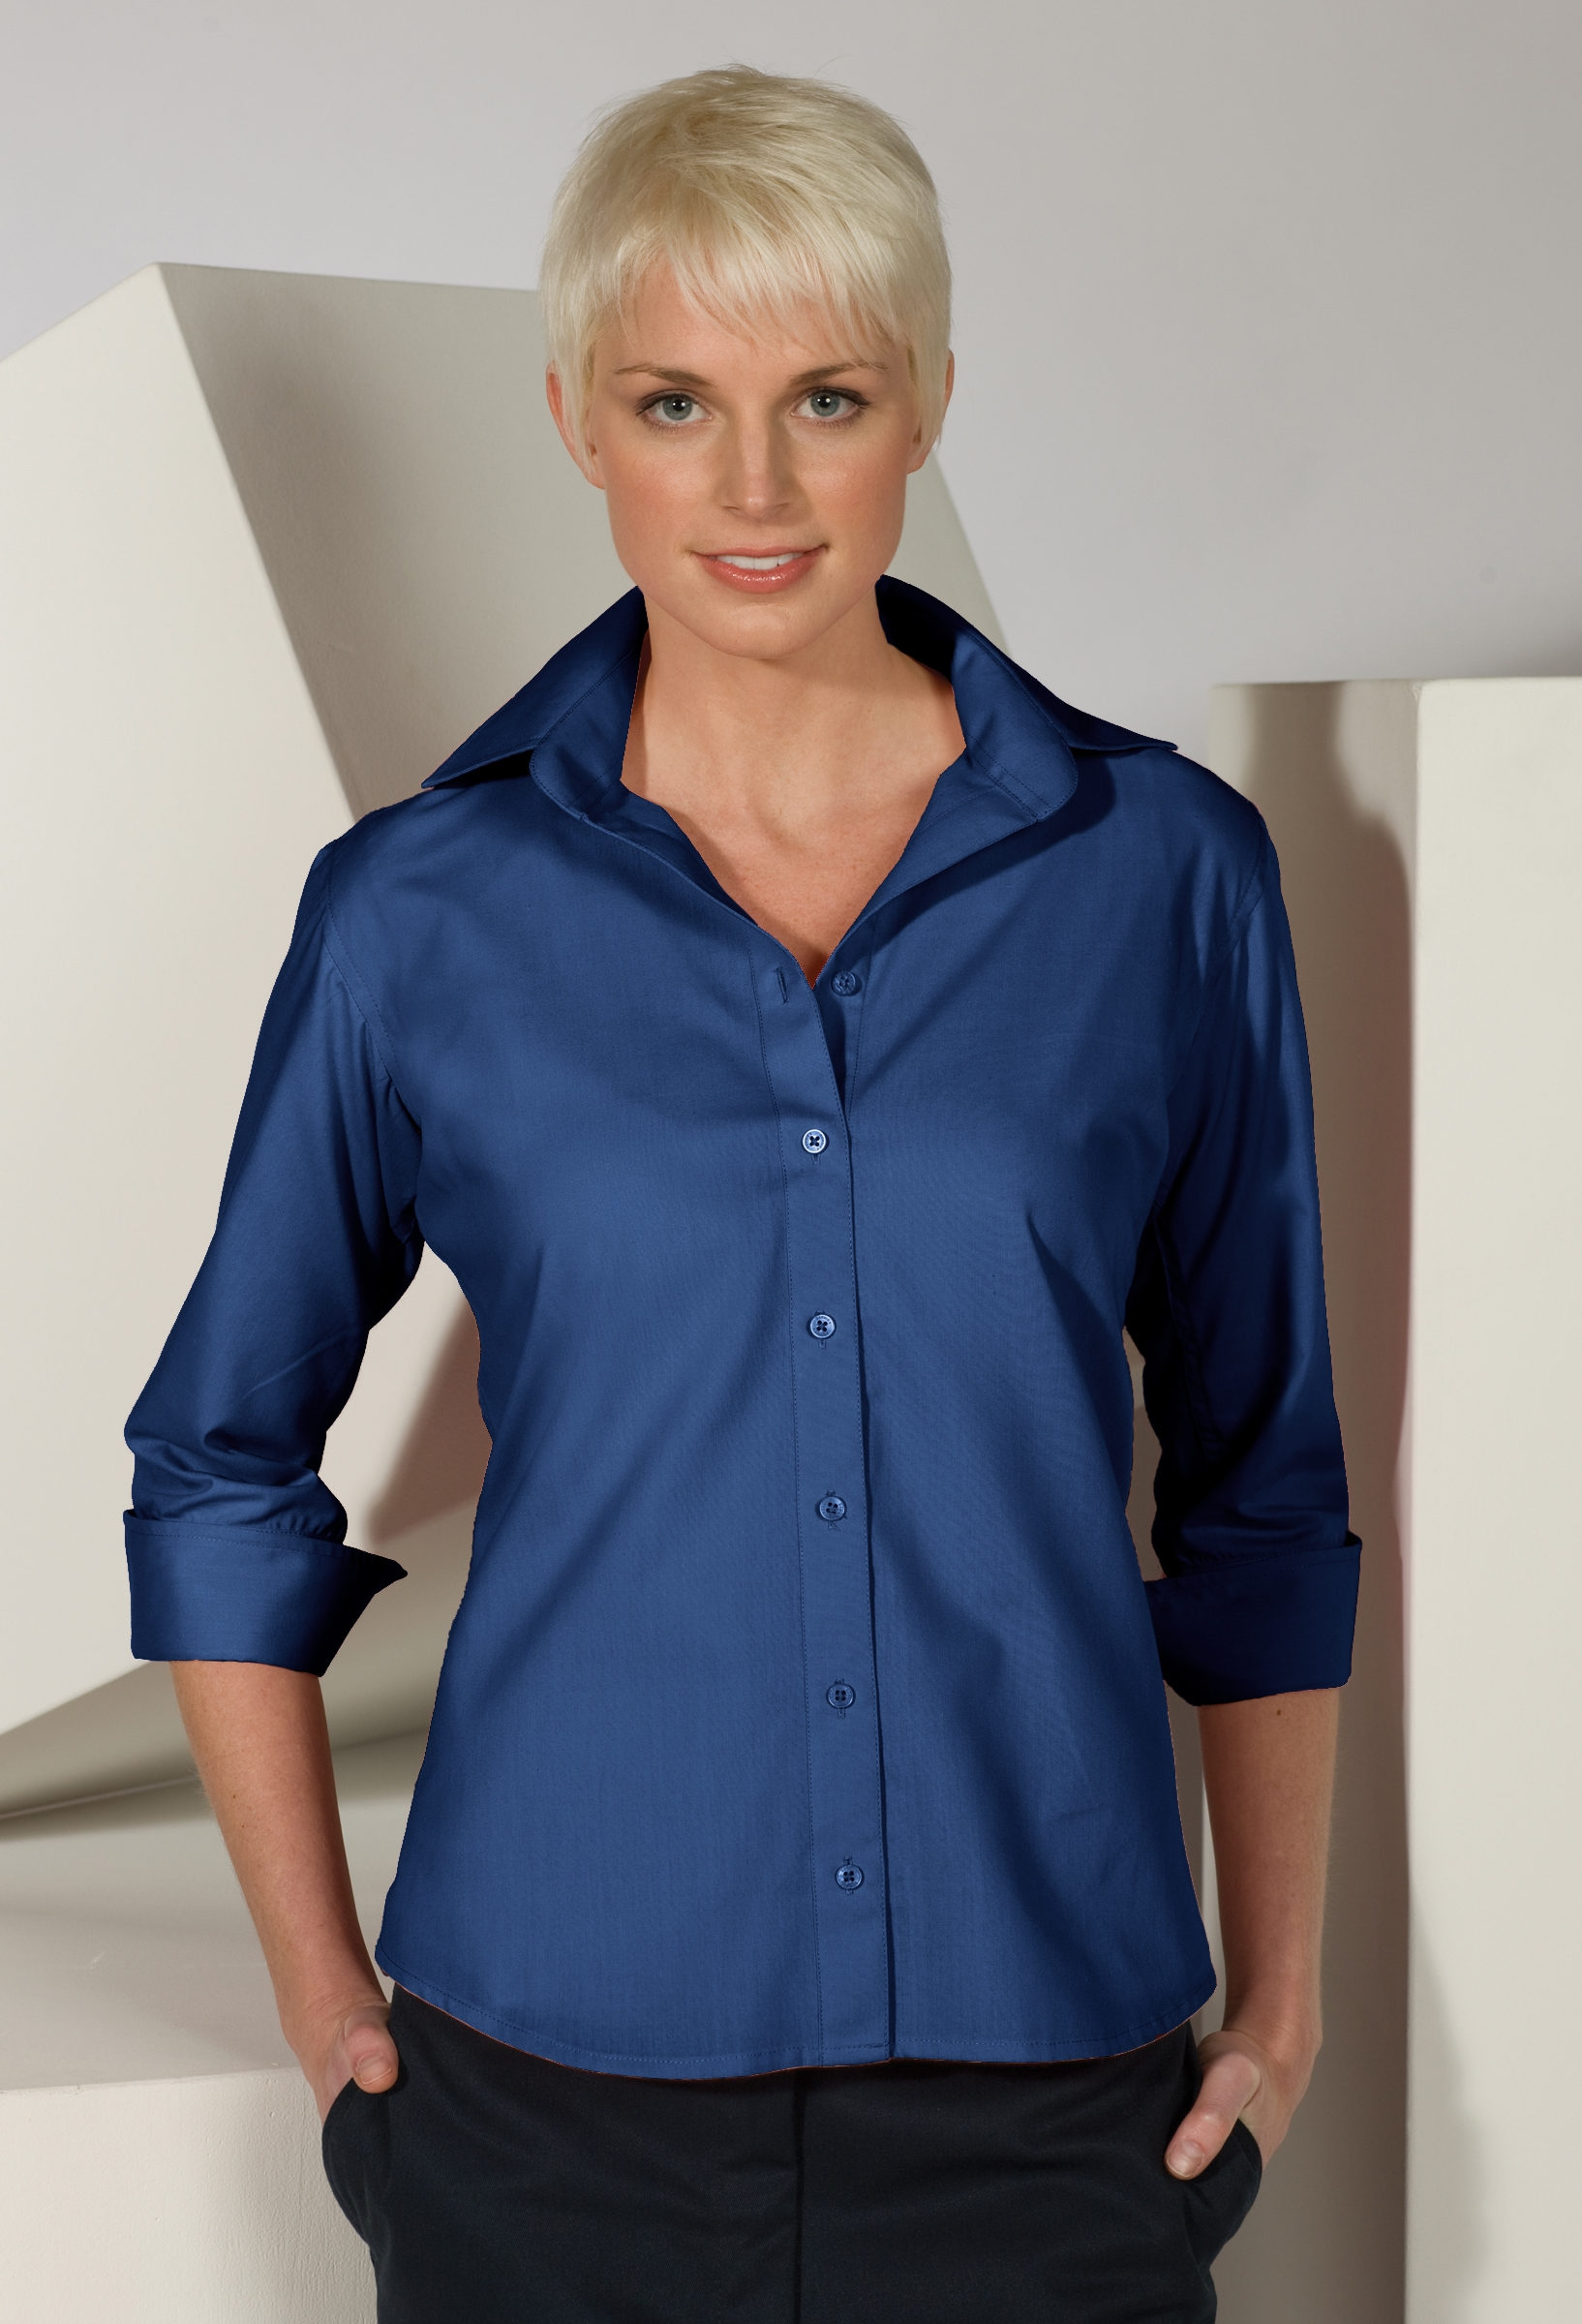 LHE5040-GP - Ladies V-Neck Button Up Poplin 3/4 Length Sleeve, Sizes XXSM- 3XL